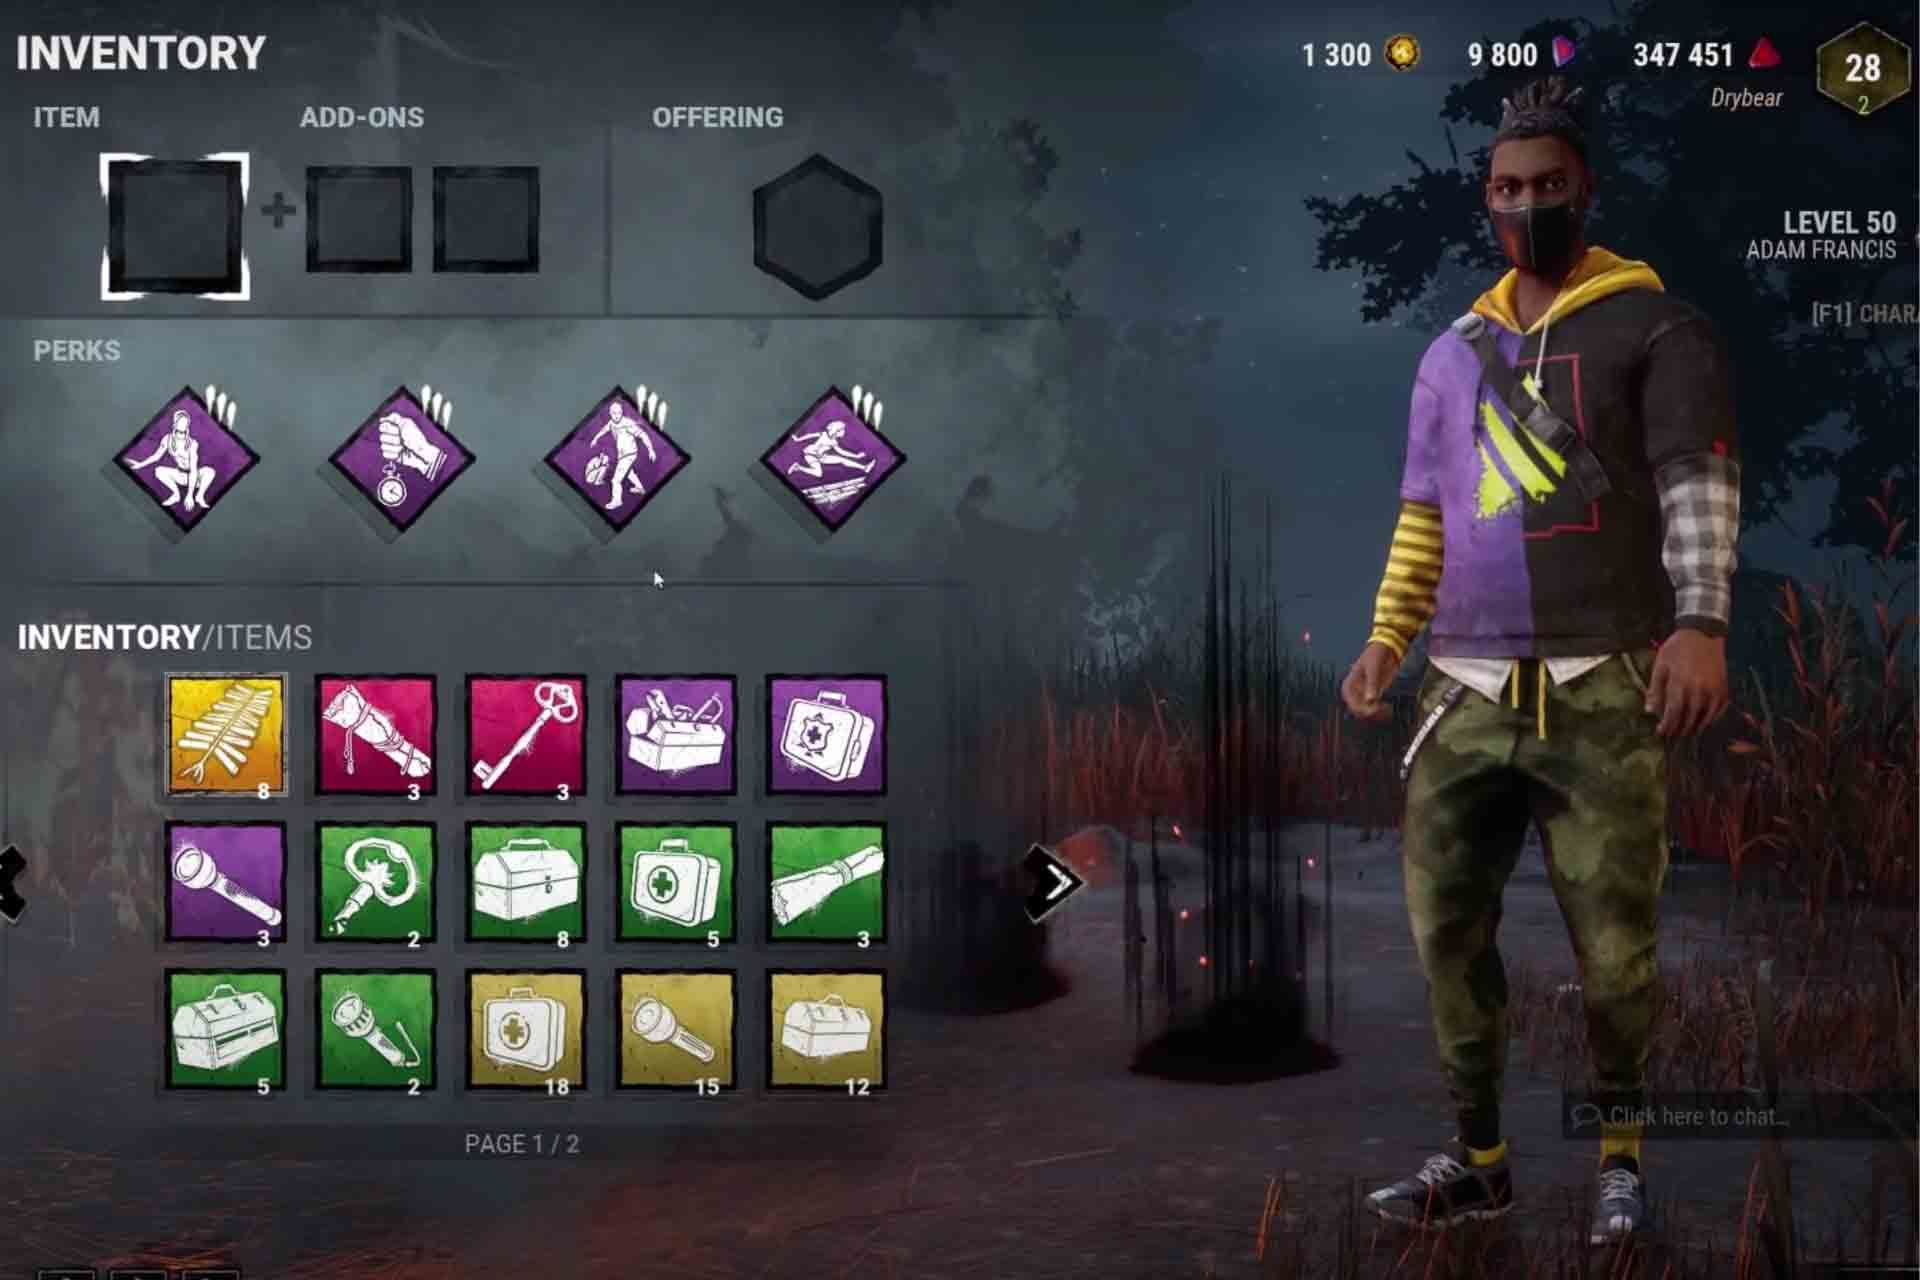 Customisation of the Survivor characters by adding items from the inventory, adding perks and other add-ons.